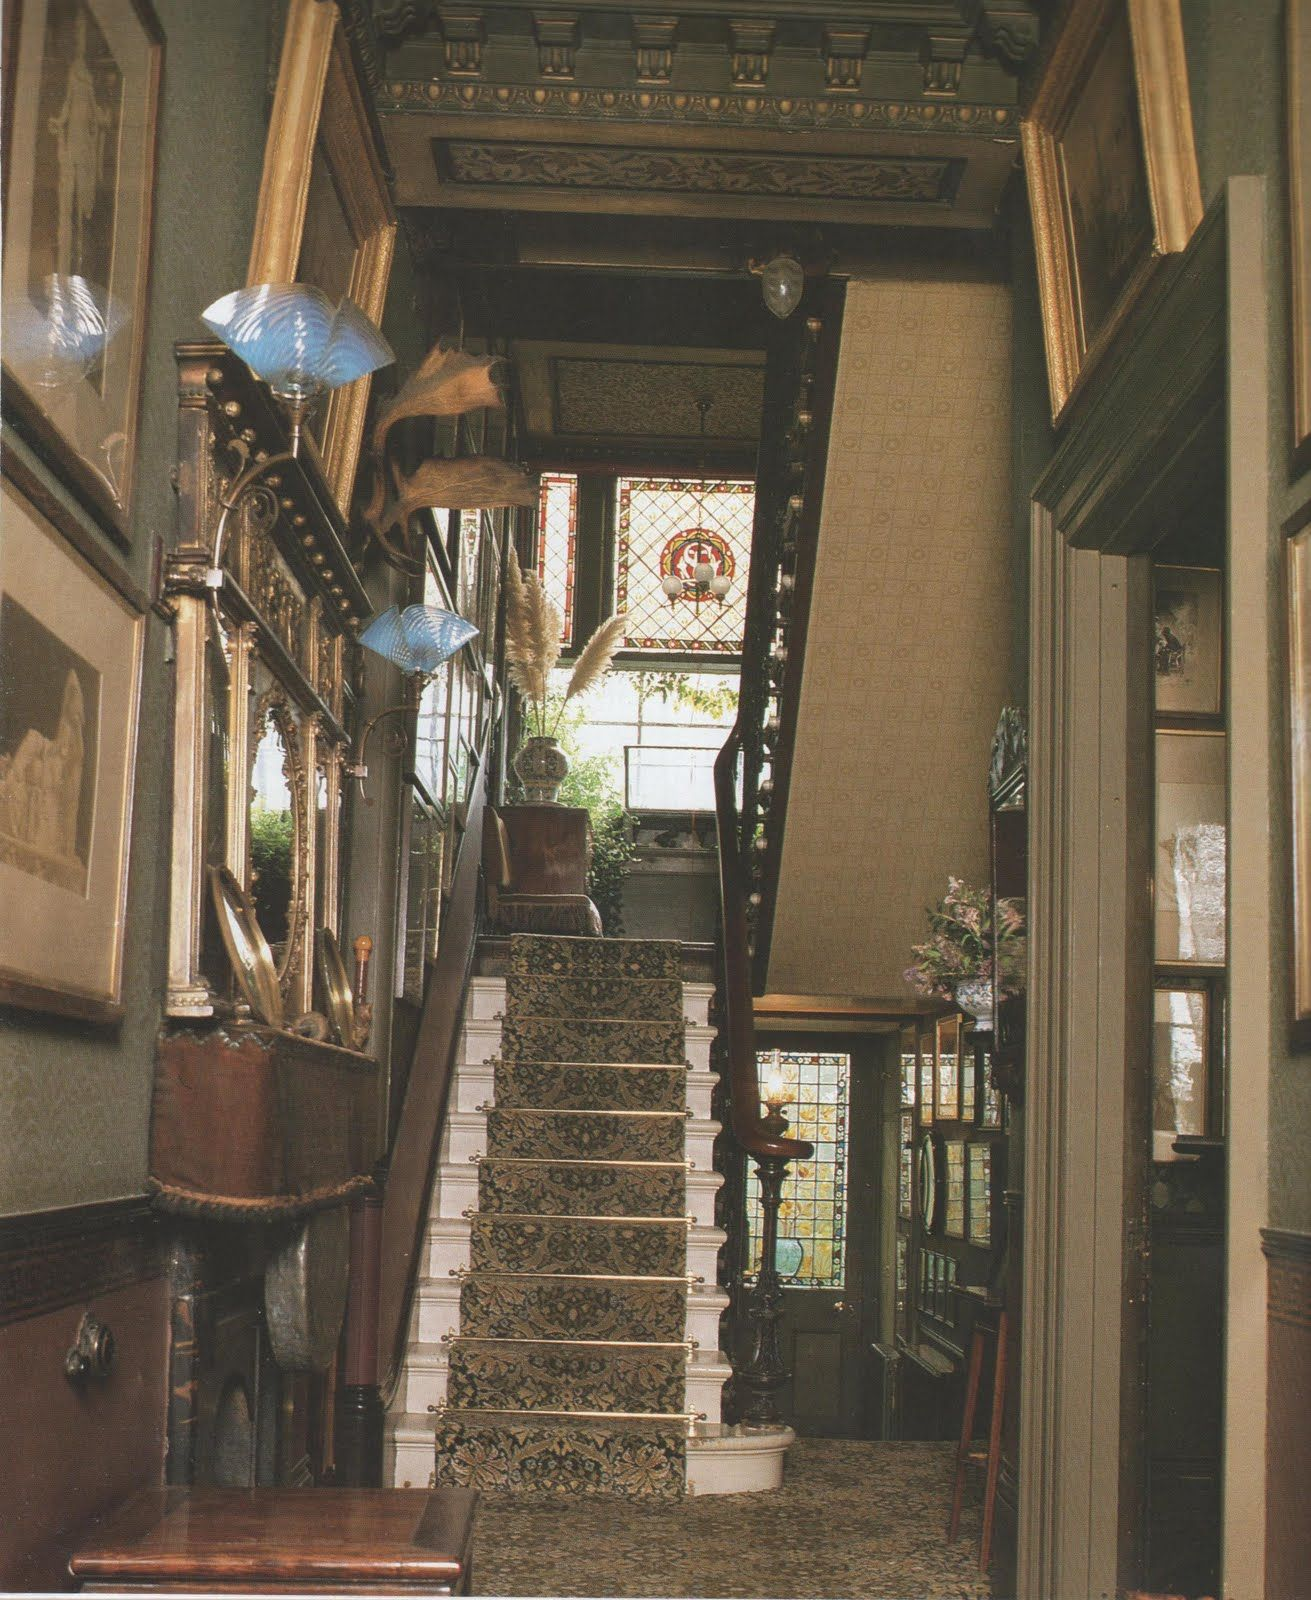 The Following Are Pictures From The Book Victorian House